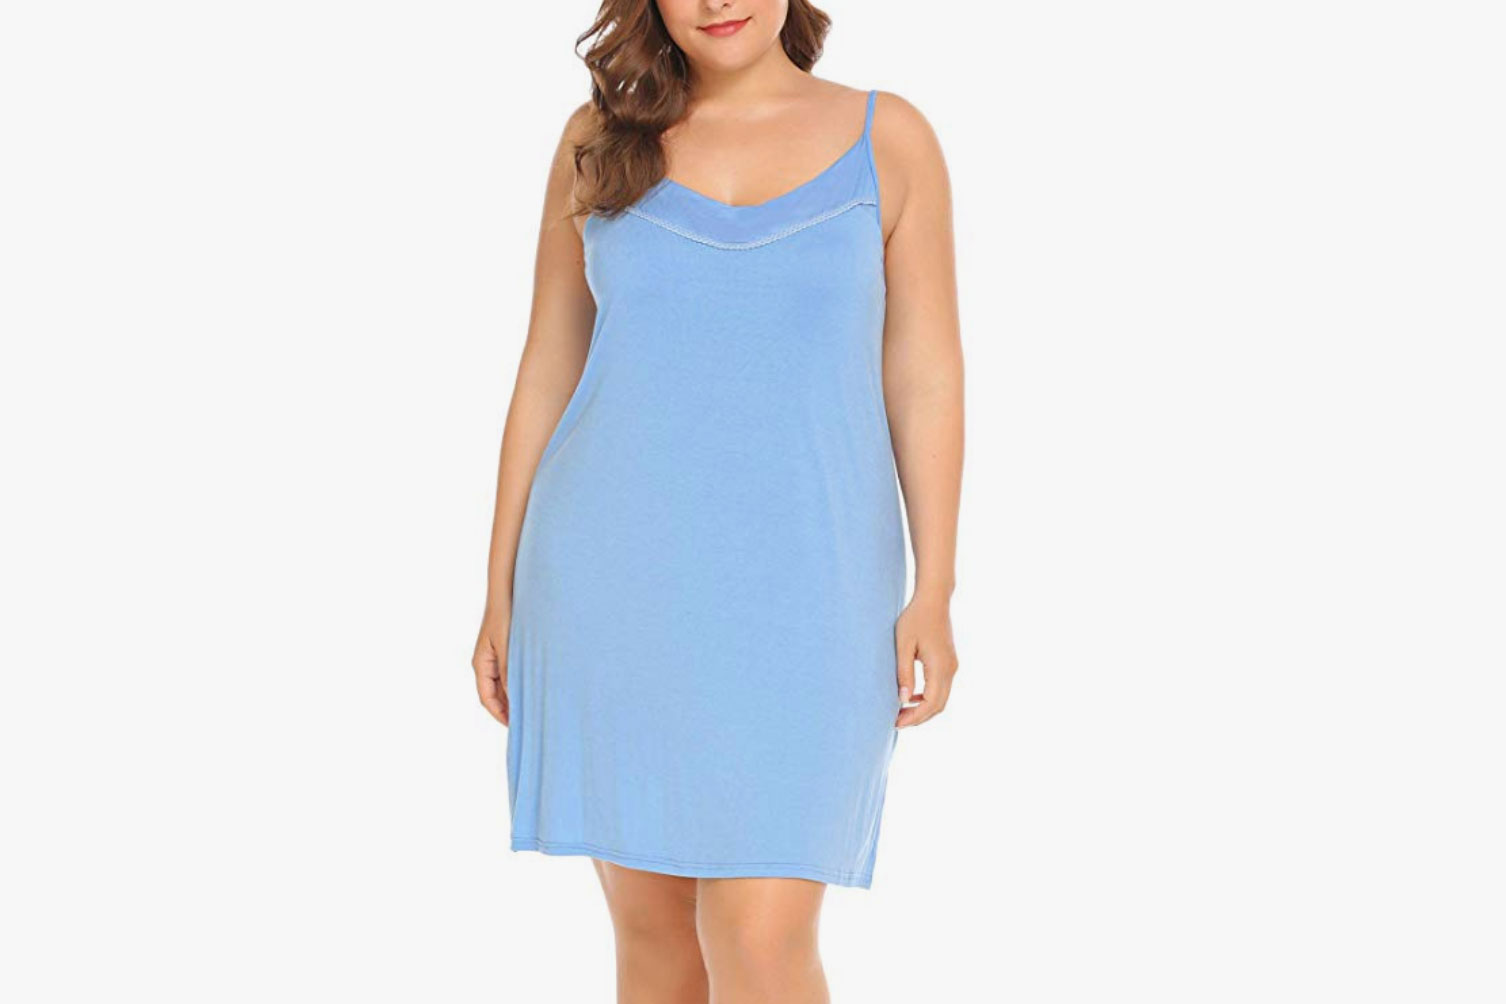 IN'VOLAND Women's Full Slips Plus-Size Nightgown